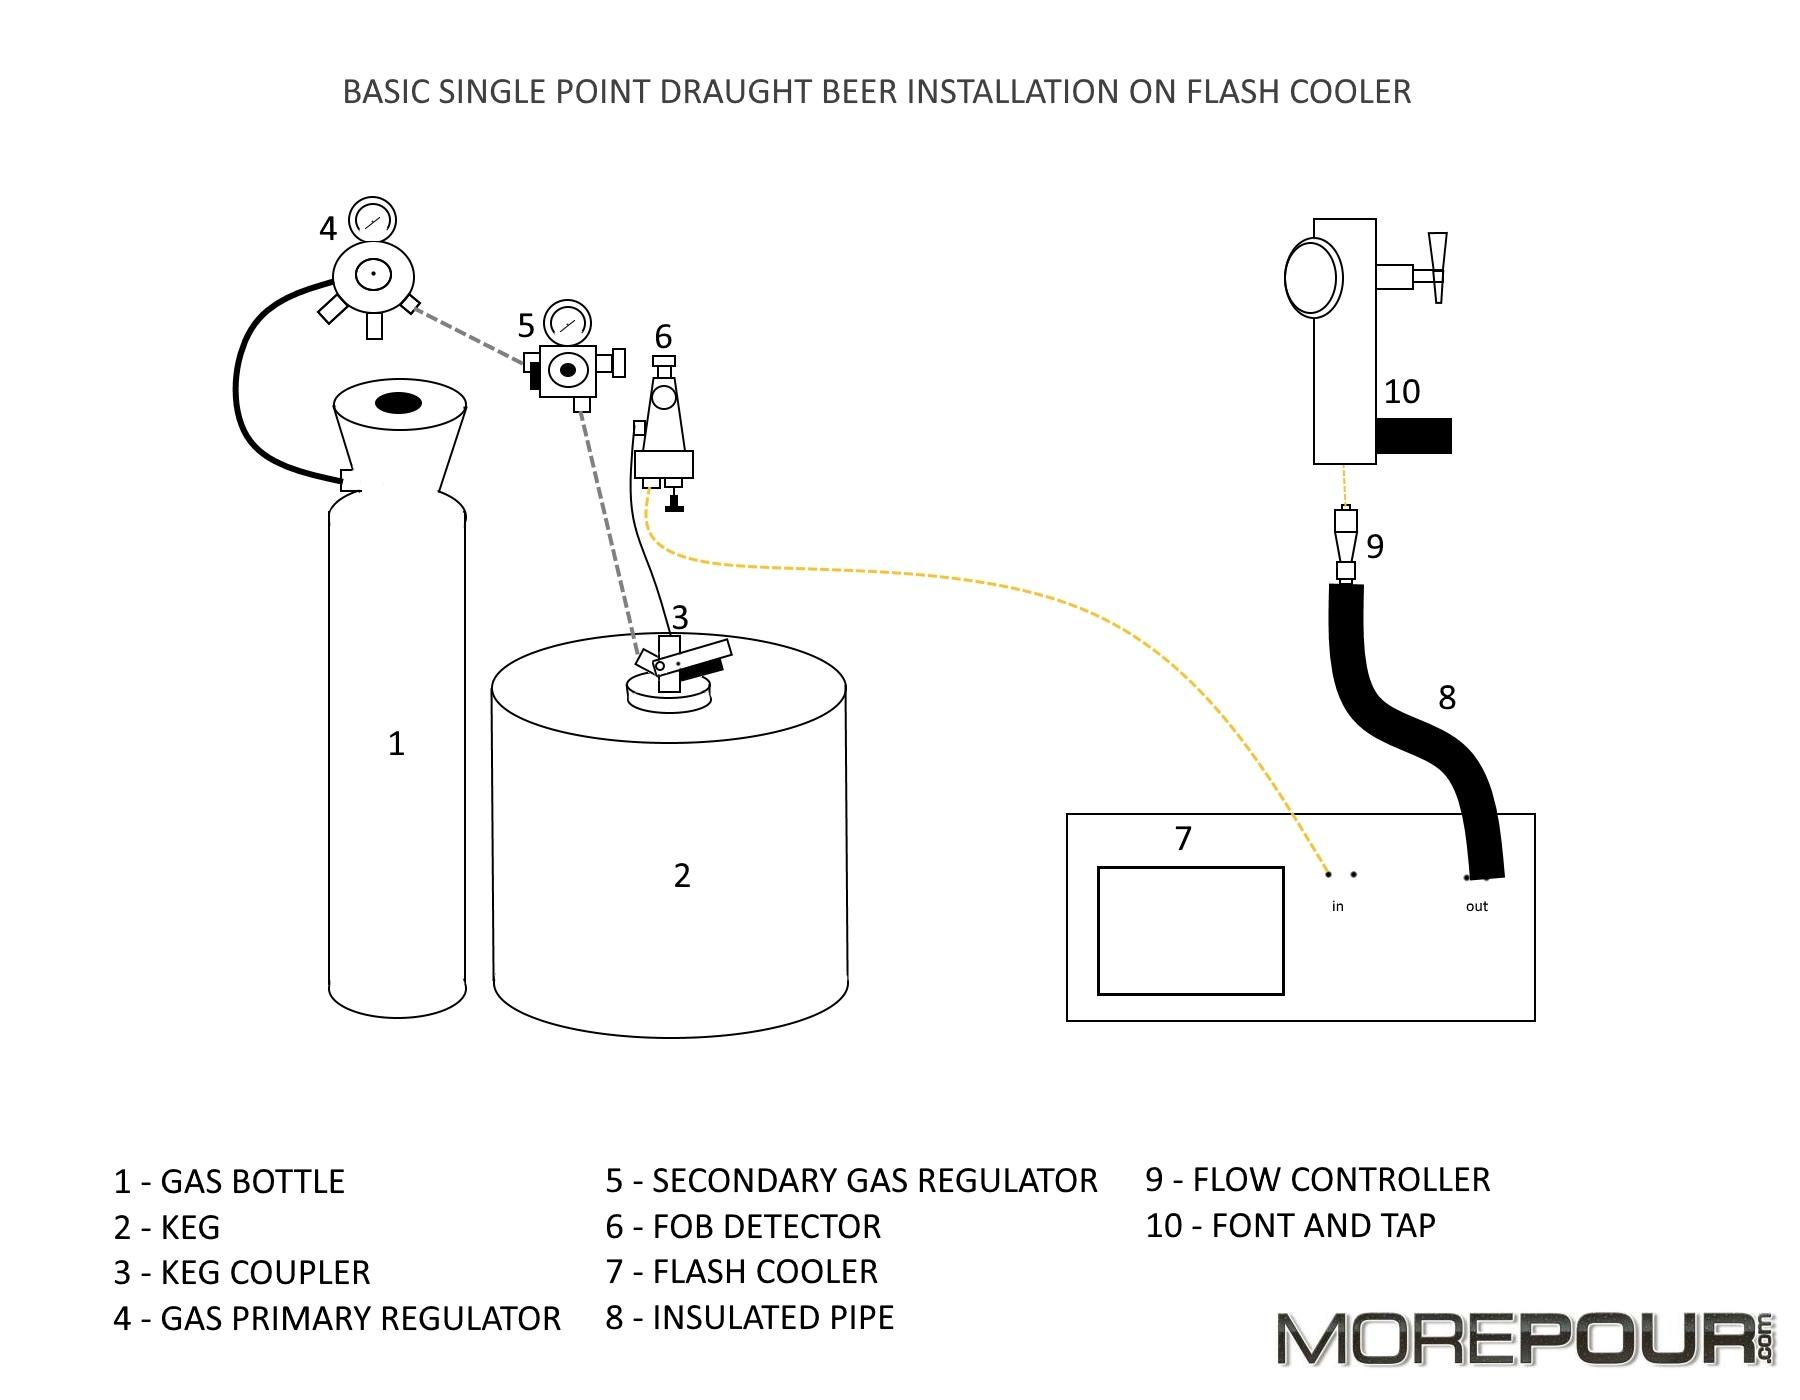 drawing of a very basic installation of a single beer tap